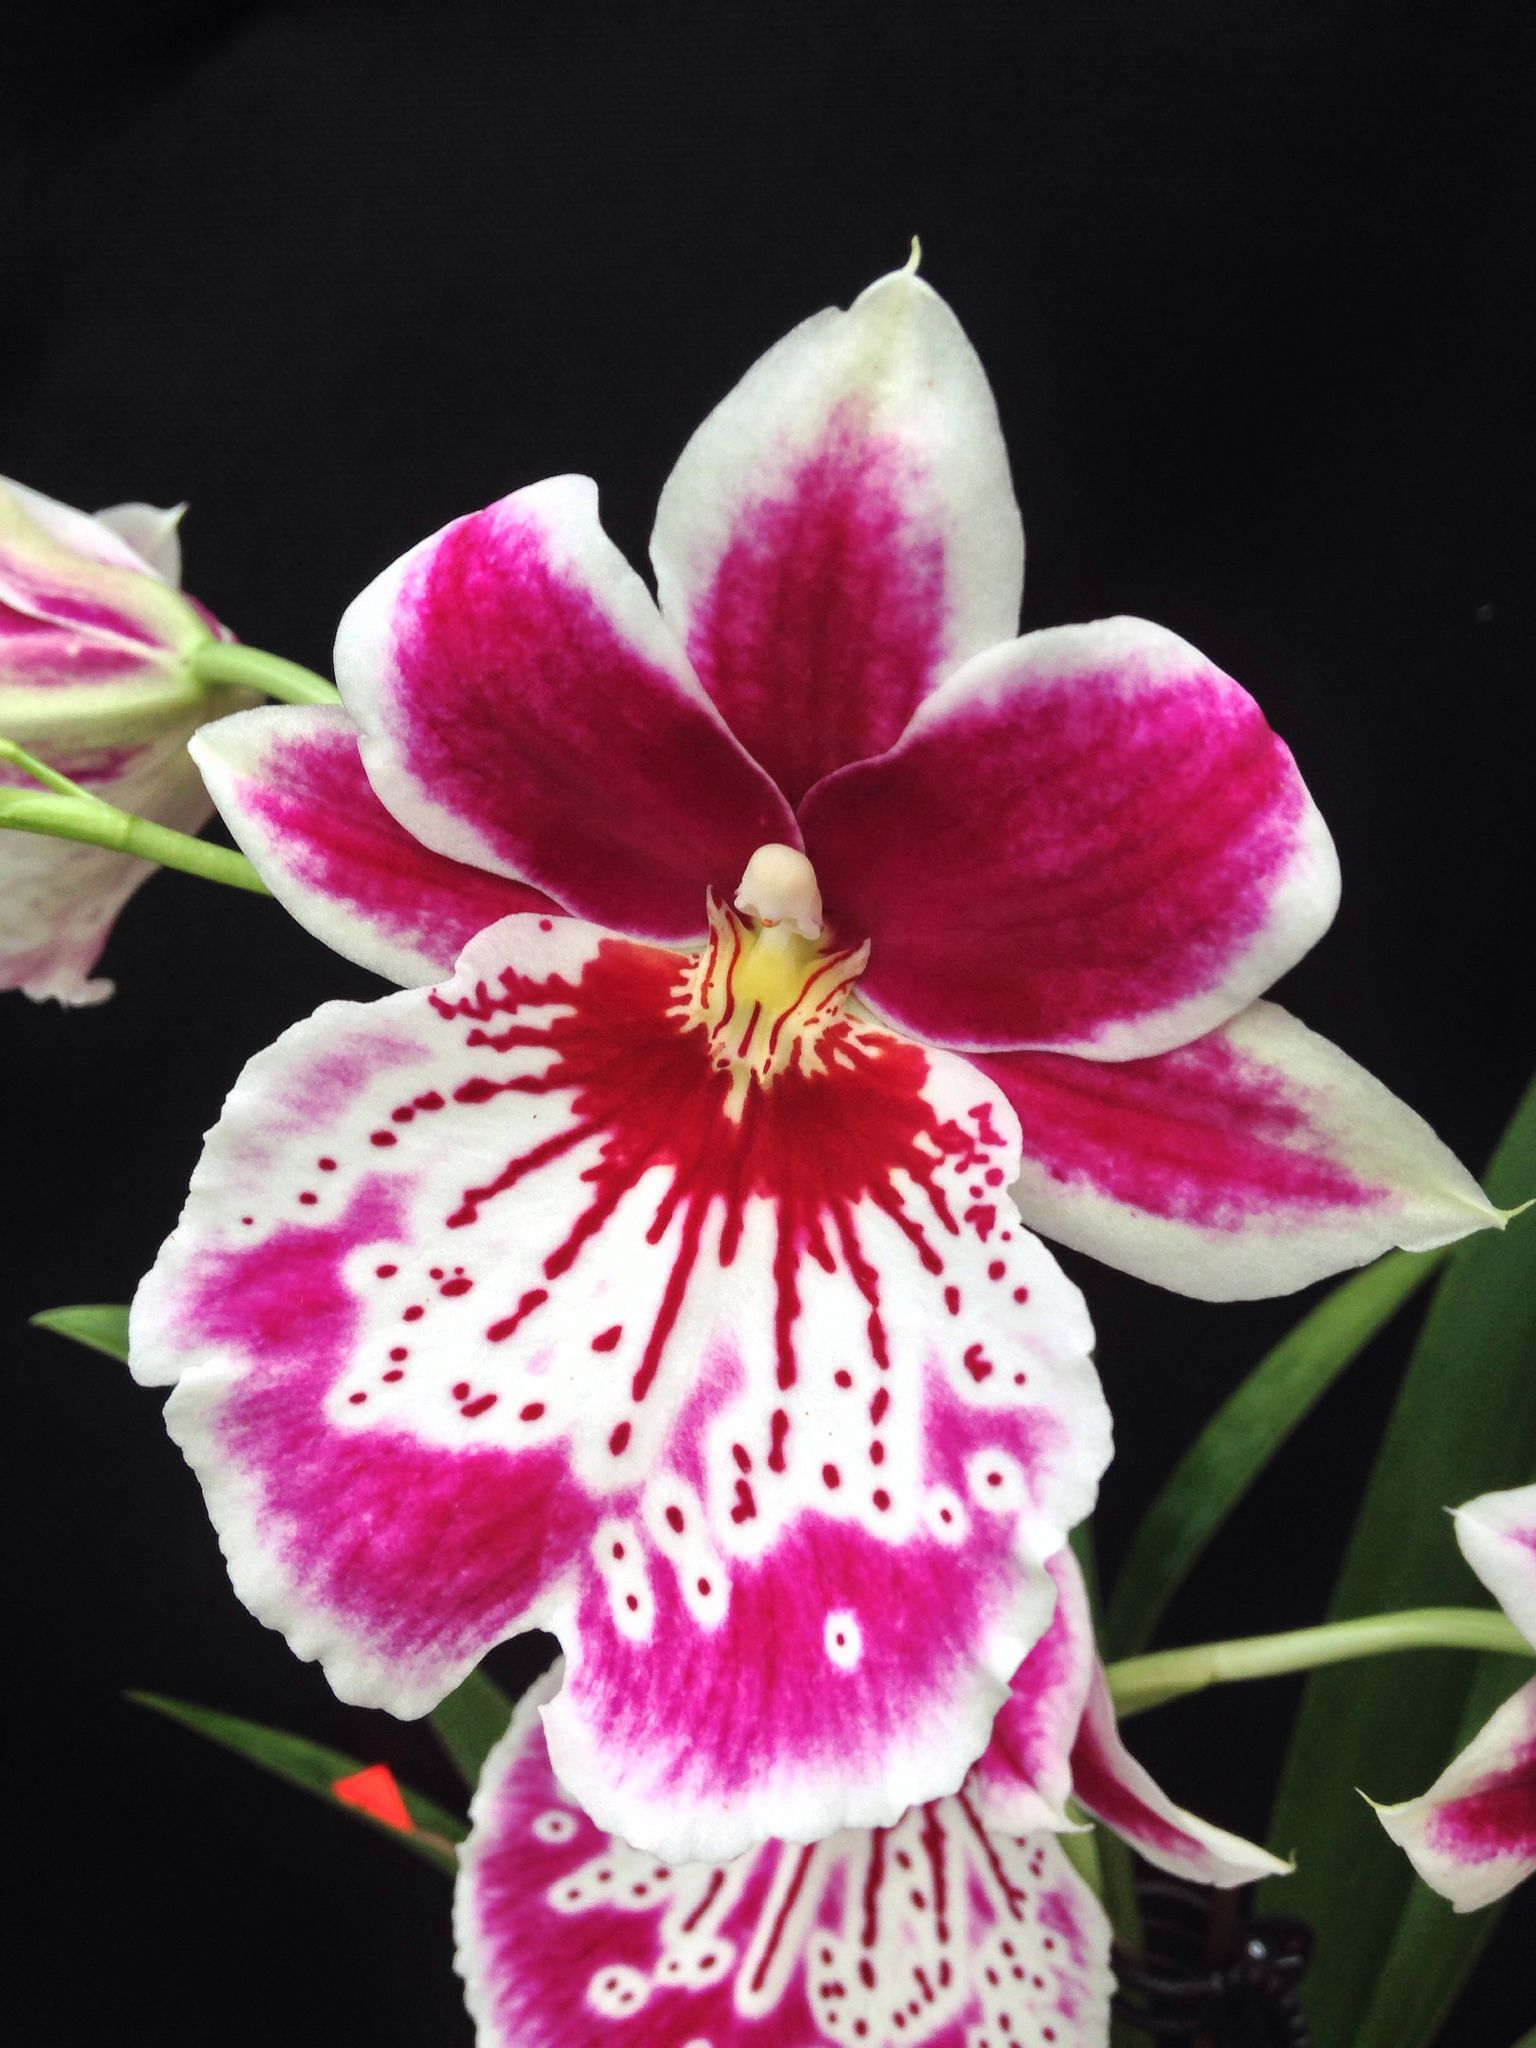 Orchid: Flower-detail of Miltoniopsis Martin Orenstein 'Shirley P' (Eros x Violet) - Flickr - Photo Sharing!